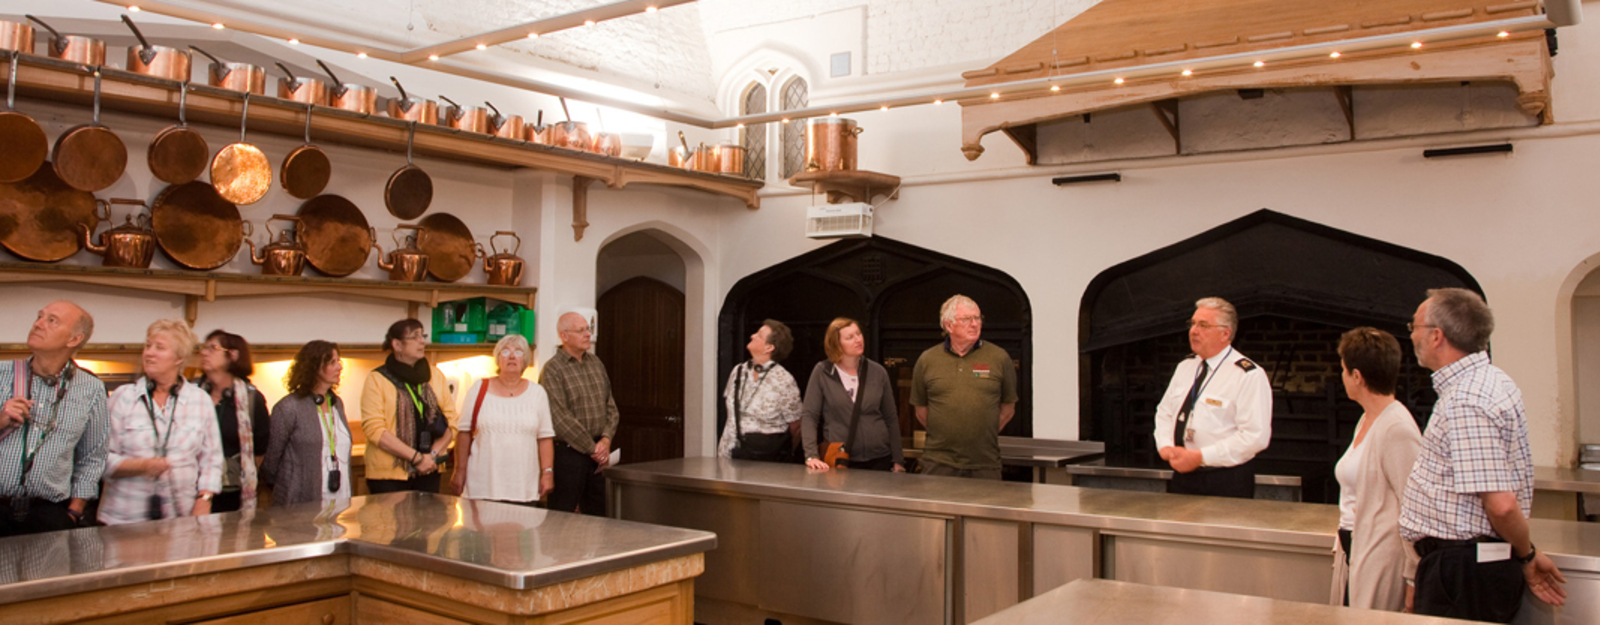 great kitchen to state apartments for groups - Great Kitchen